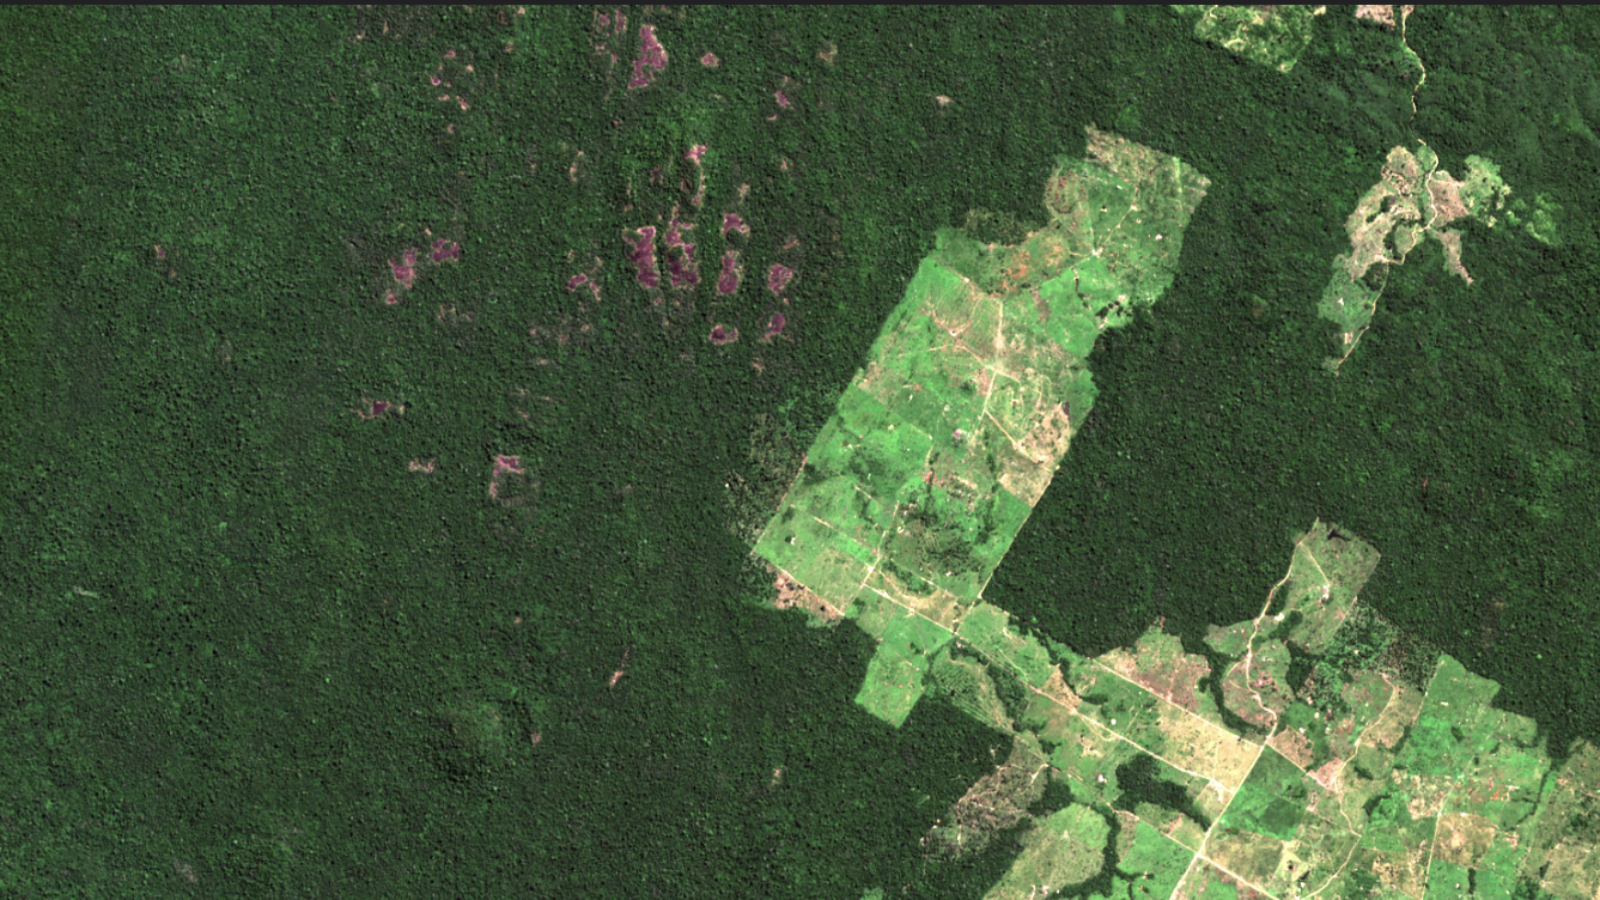 An aerial view of a broad swathe of deforested land surrounded by dark rainforest.